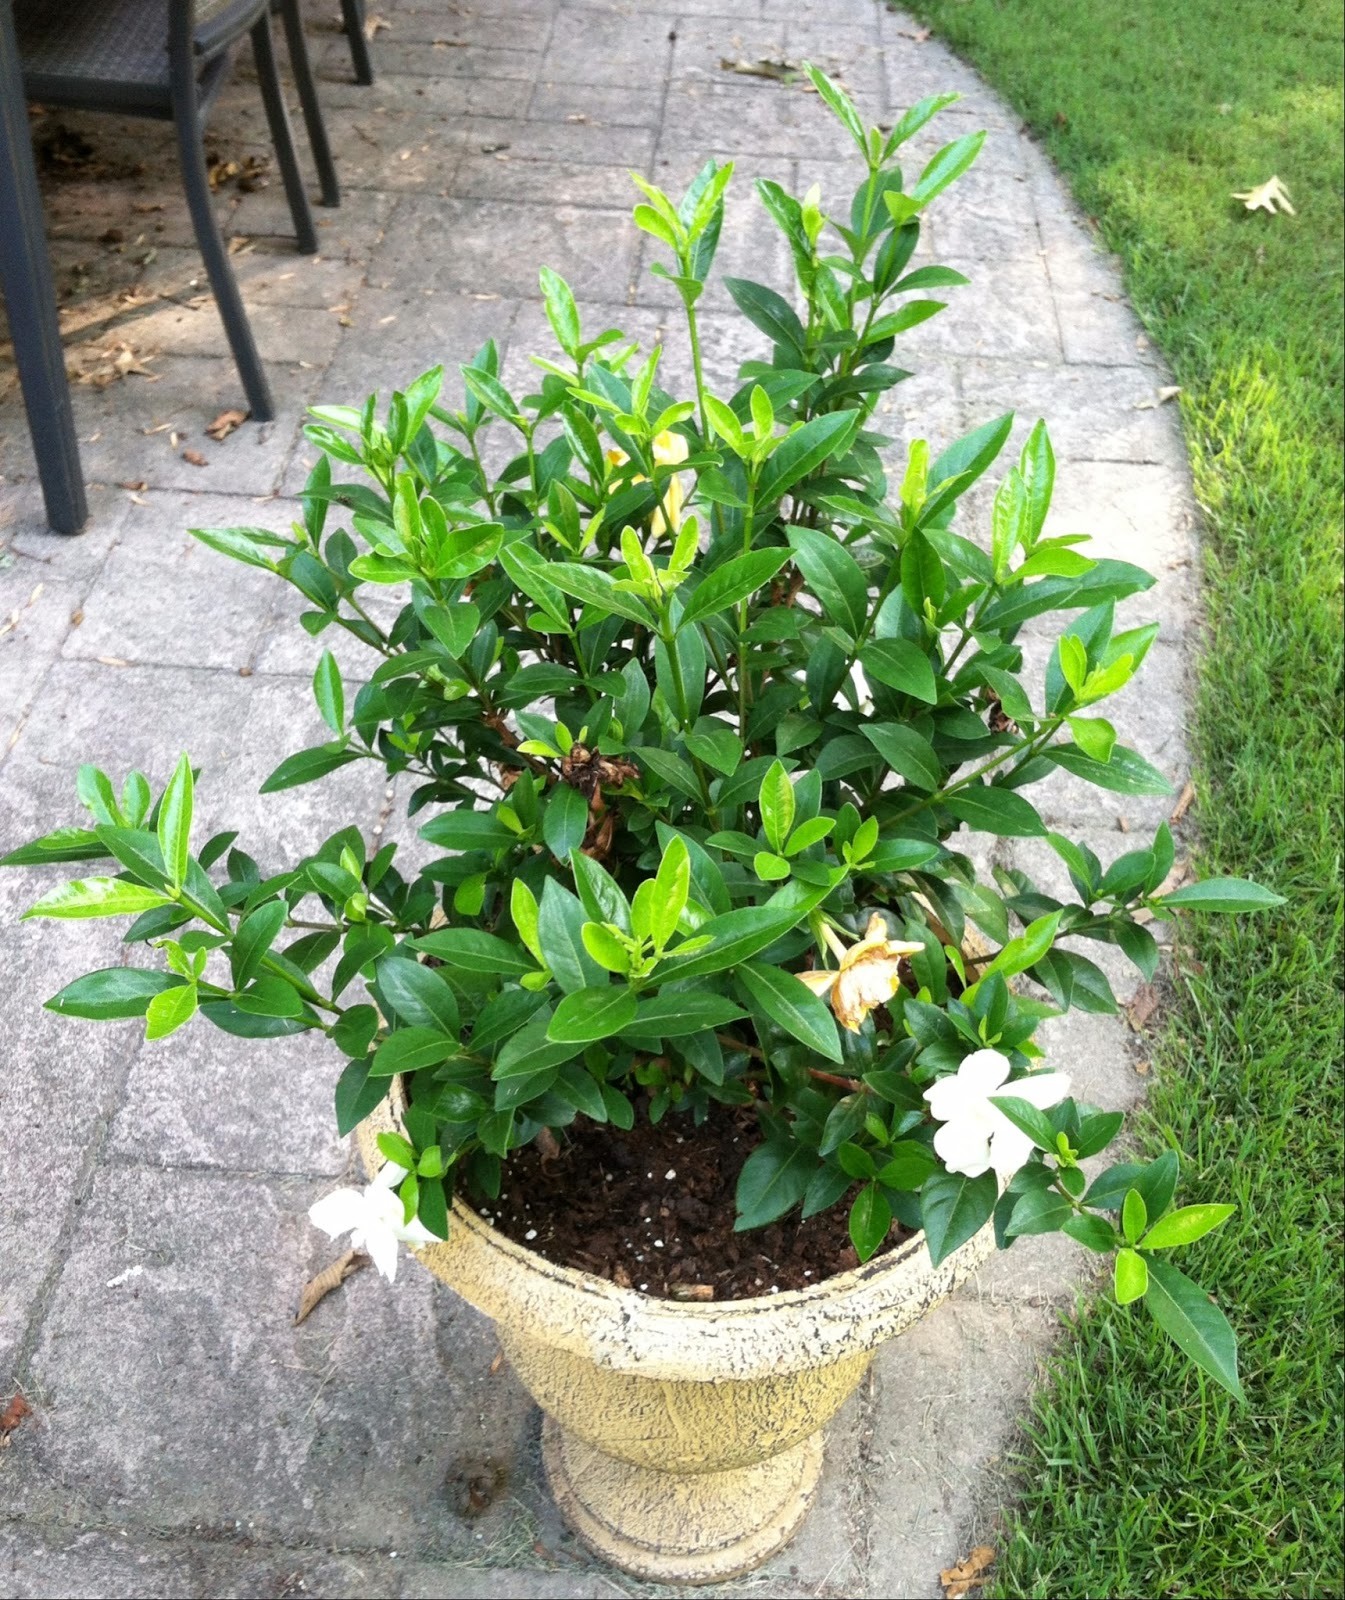 ... In Among Other Varieties Of Gardenias At Lowes. I Happily Bought Them  Both And Put One In A Bed Near The Patio And The Second In A Pot On The  Patio.